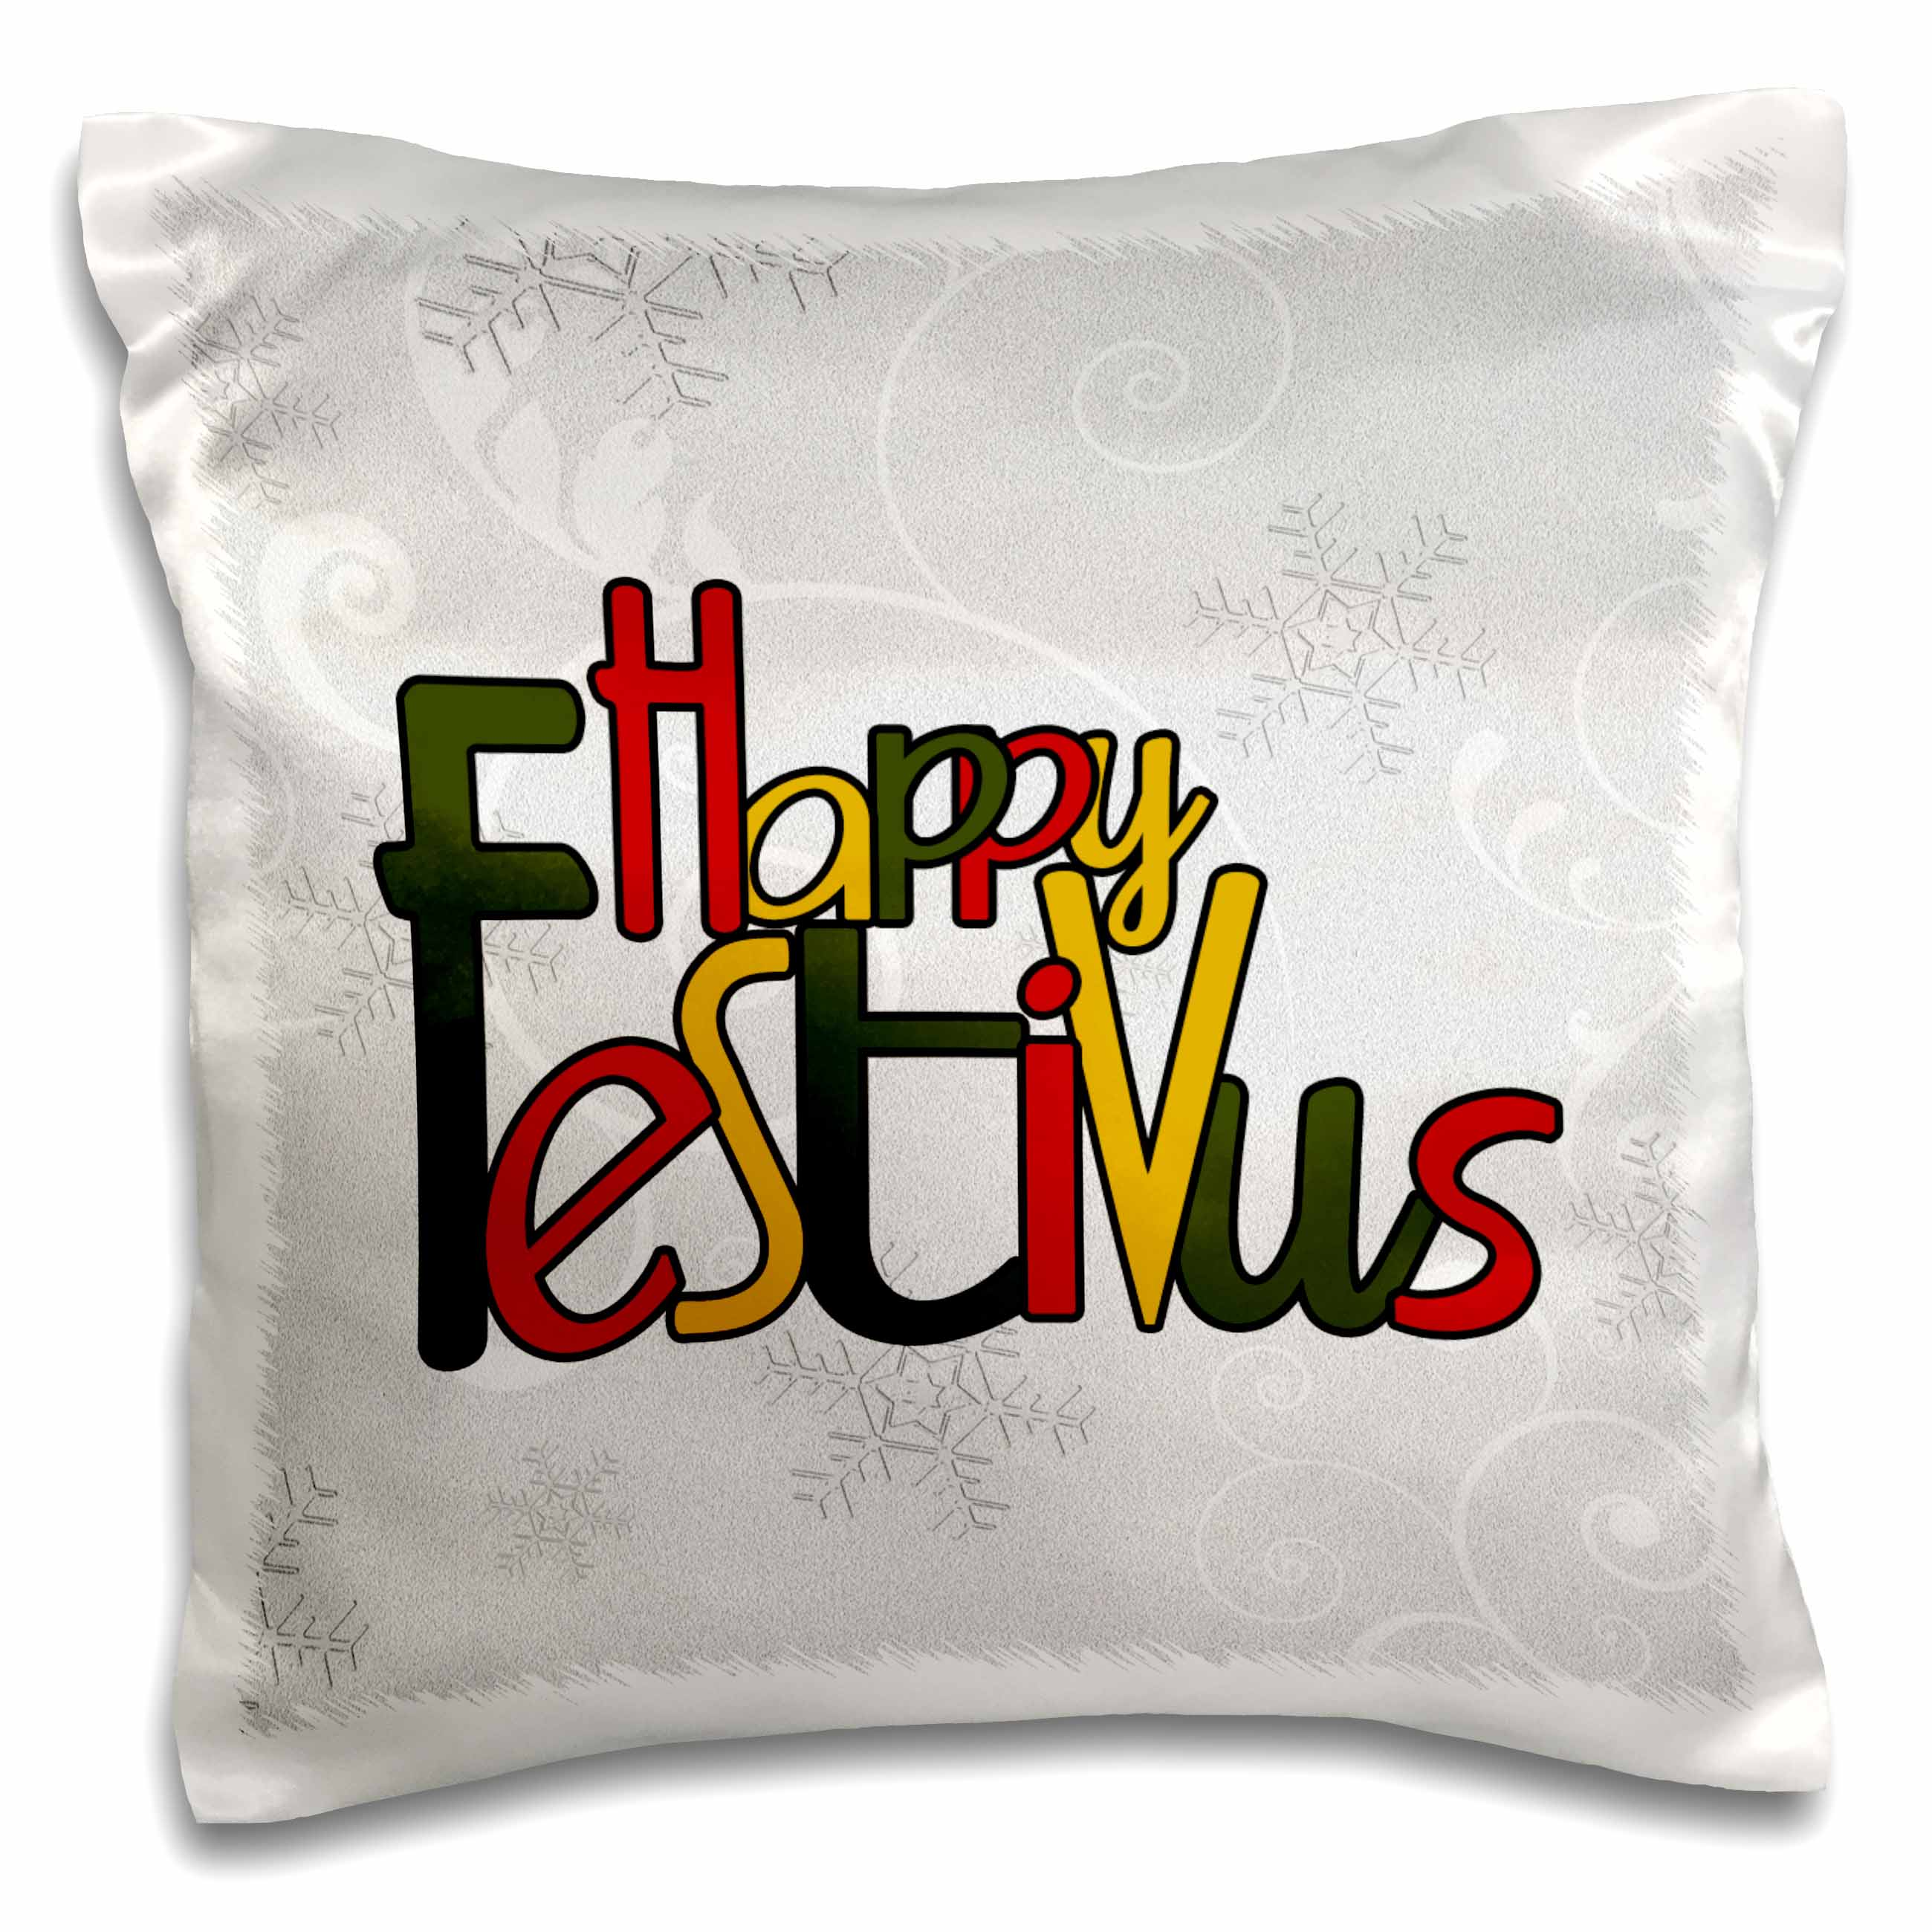 3dRose Happy Festivus in Red, Gold and Green with a Frosty Snowflake Background in Silver and White, Pillow Case, 16 by 16-inch